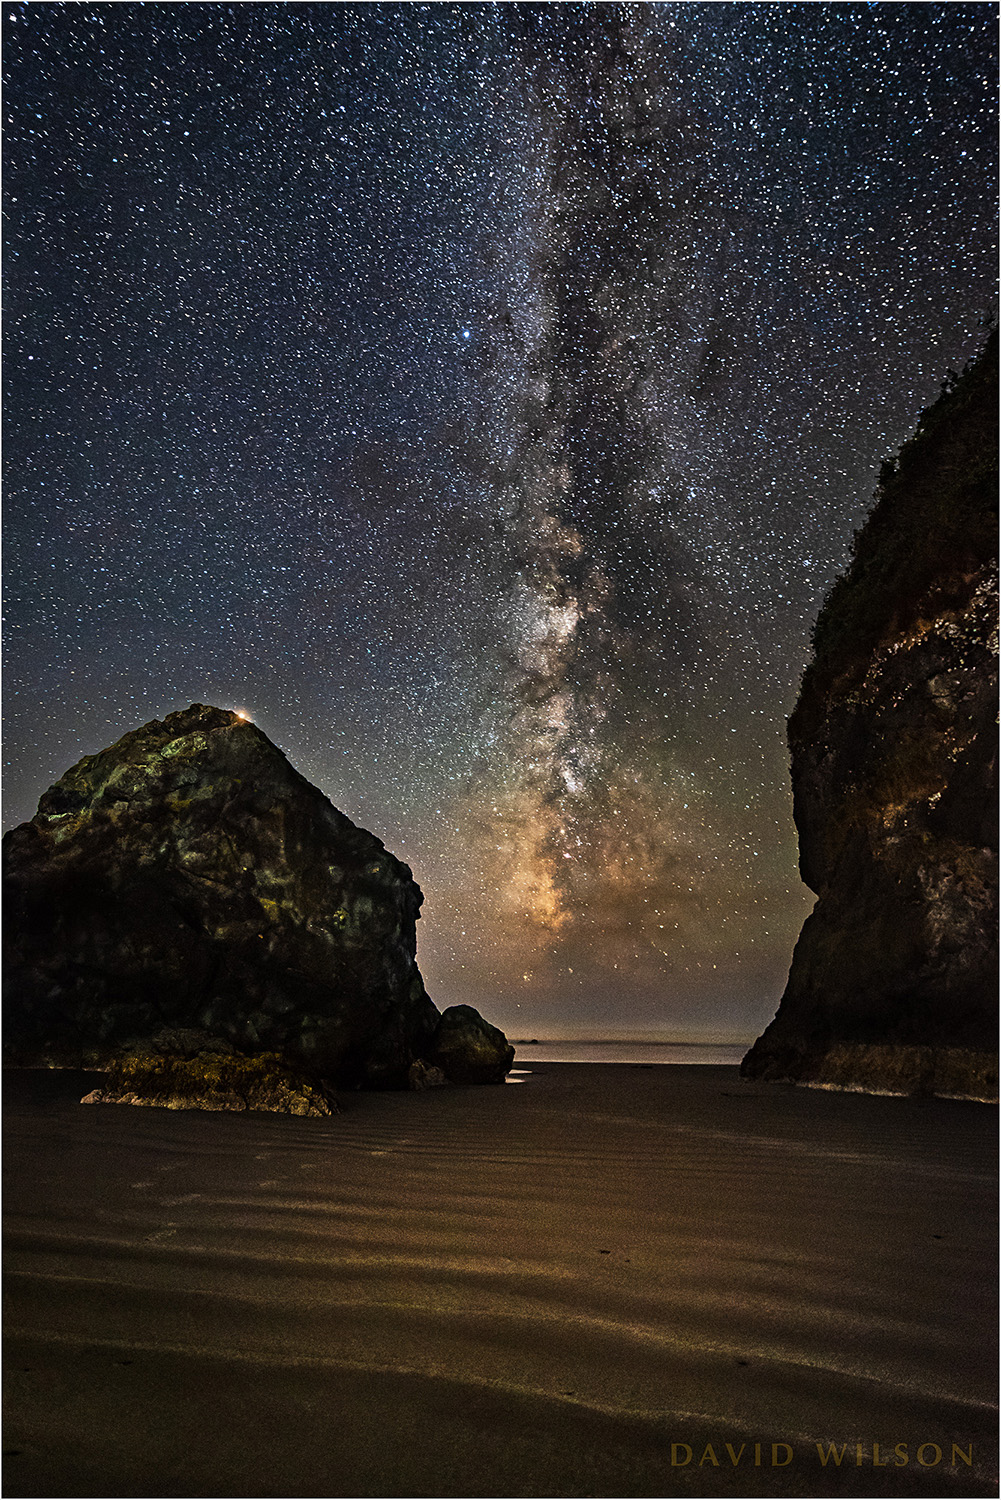 The Milky Way rises from the Pacific at Houda Point, near Camel Rock, Humboldt County, California. Mars sits at the top edge of the rock on the left. September 13, 2018.